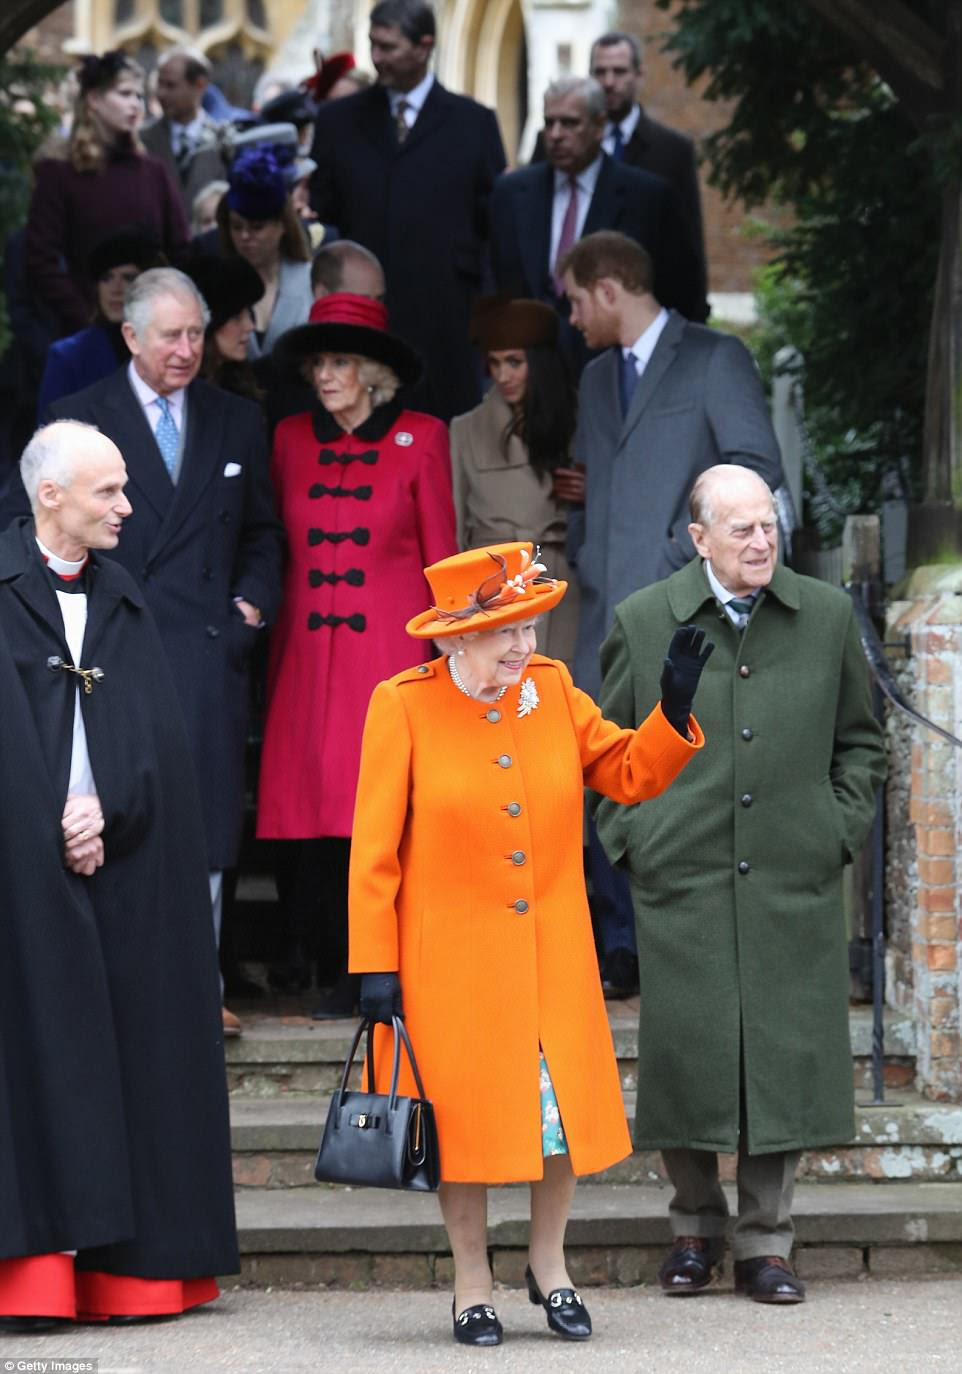 The Queen stood out in the crowd in her bright orange coat as she waved to well-wishers while leaving the church